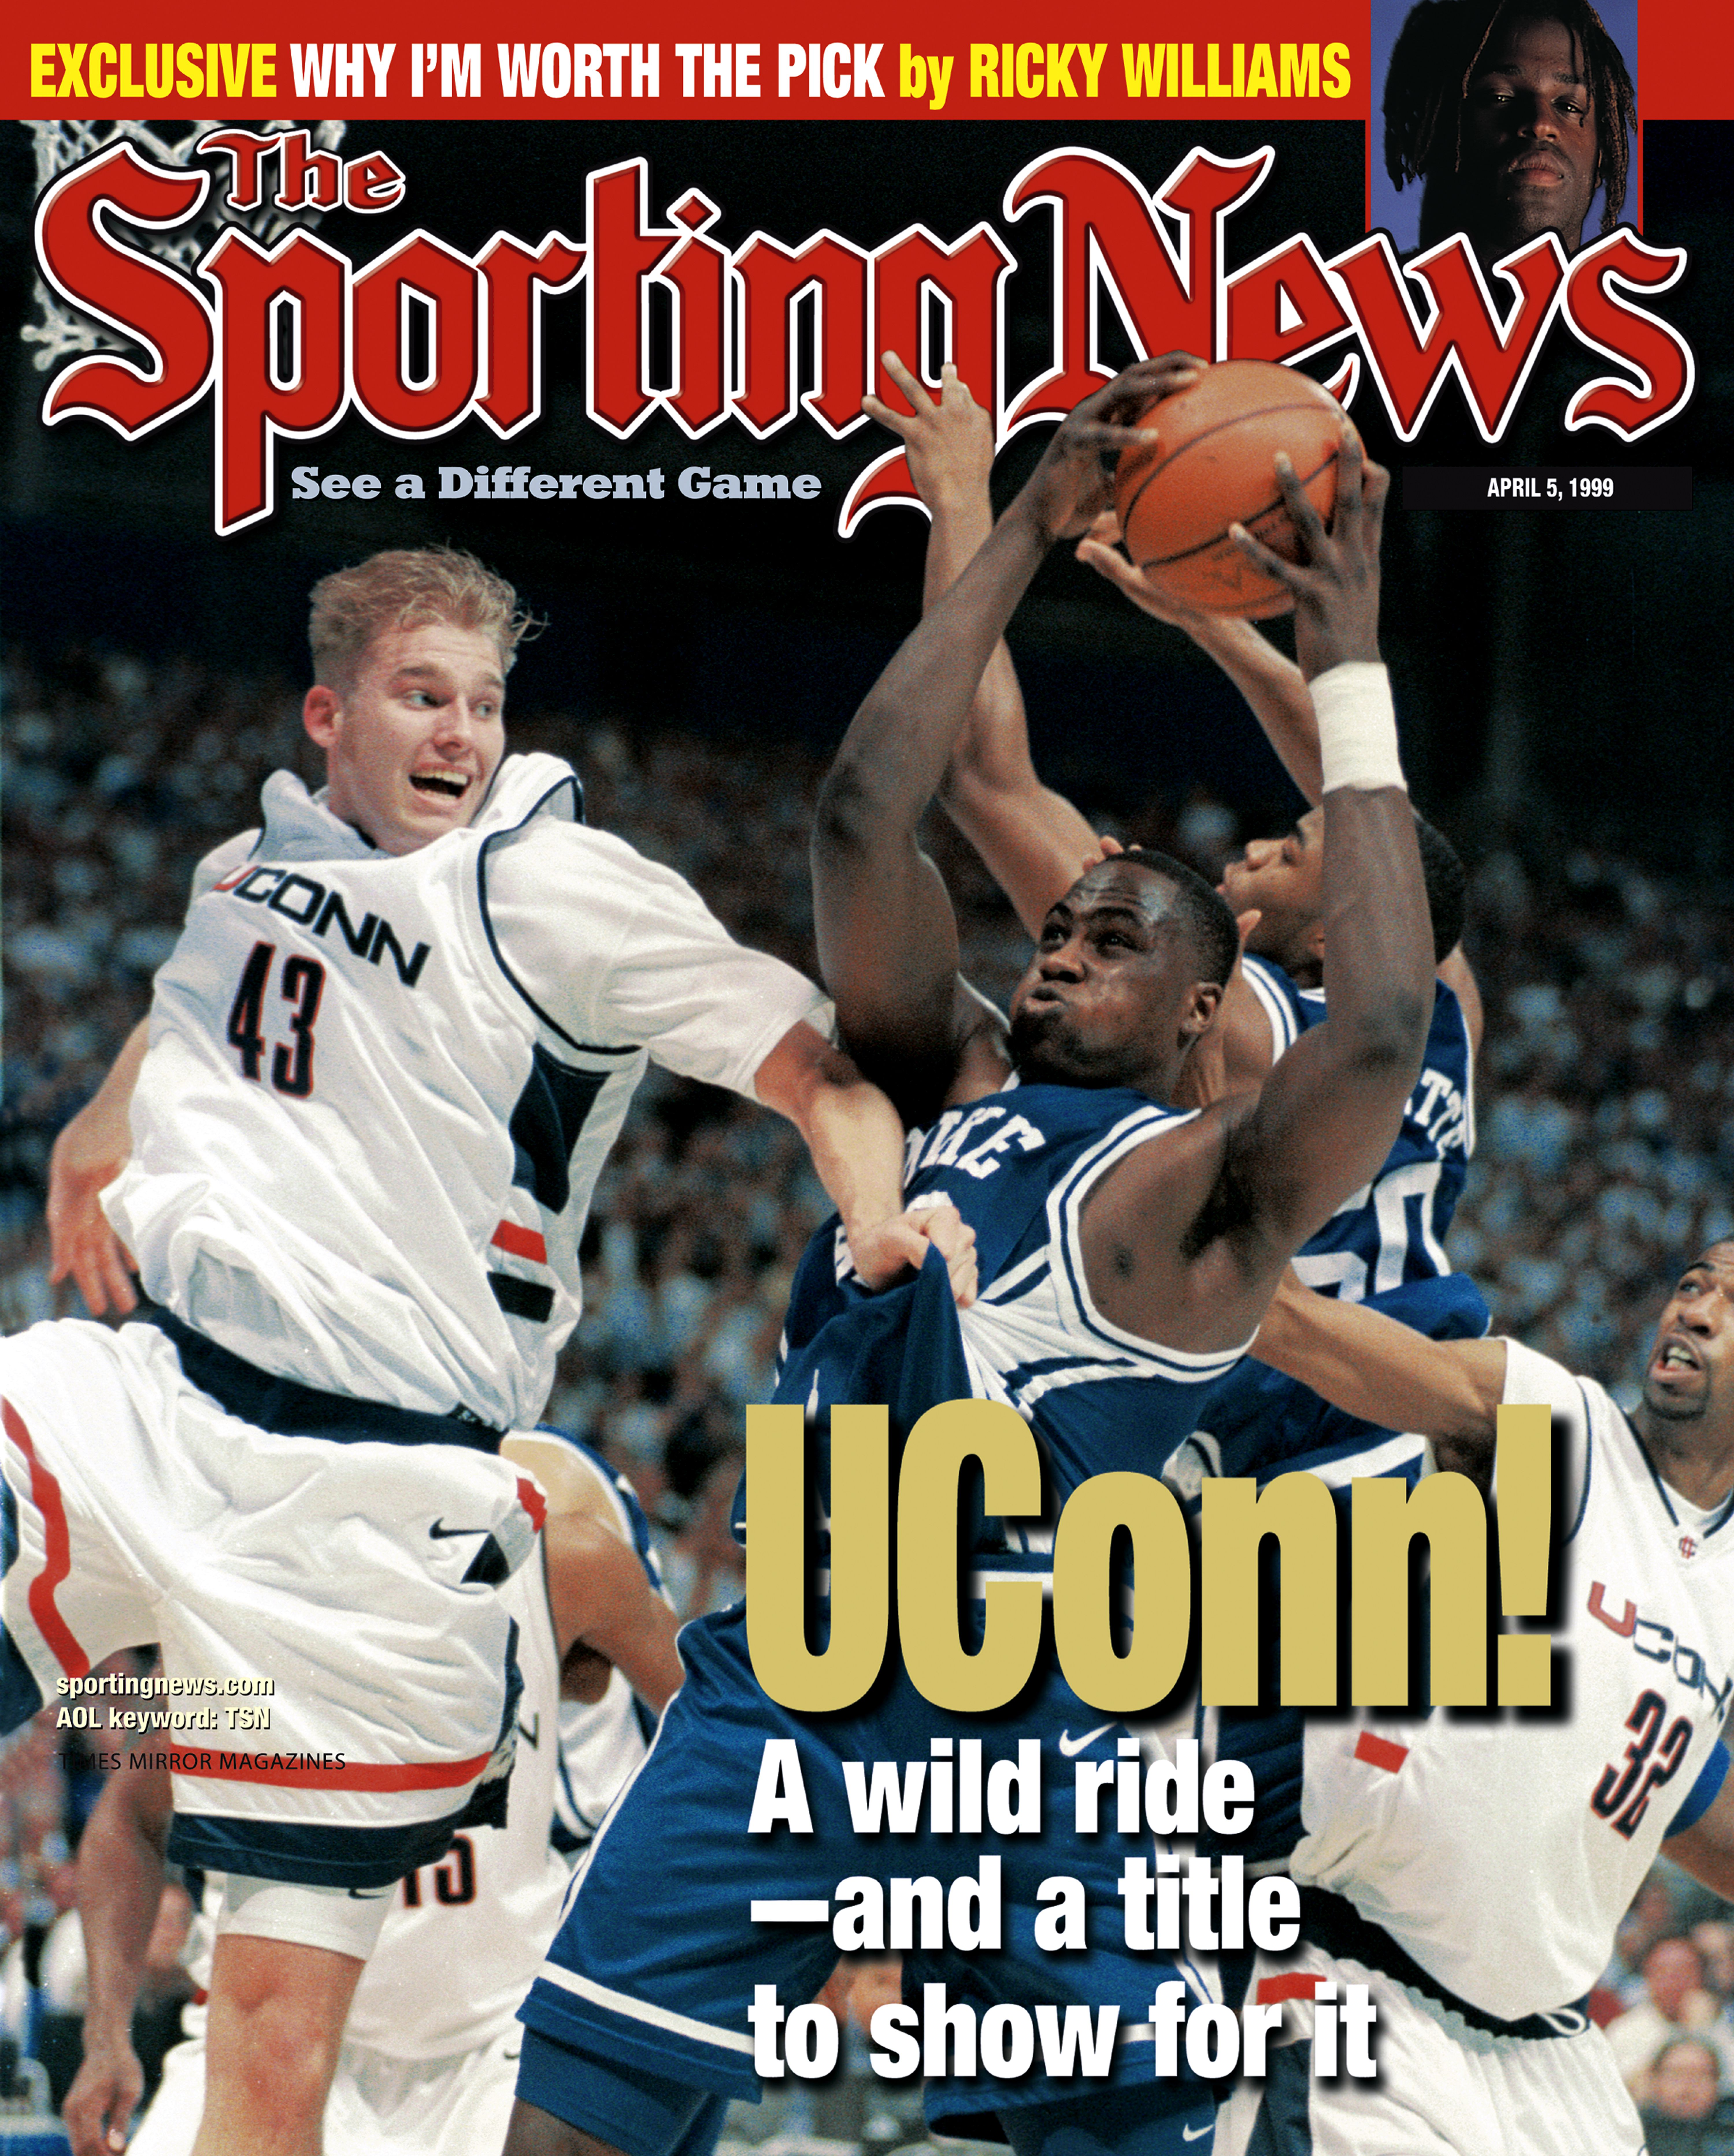 Sporting News magazine cover from 1999